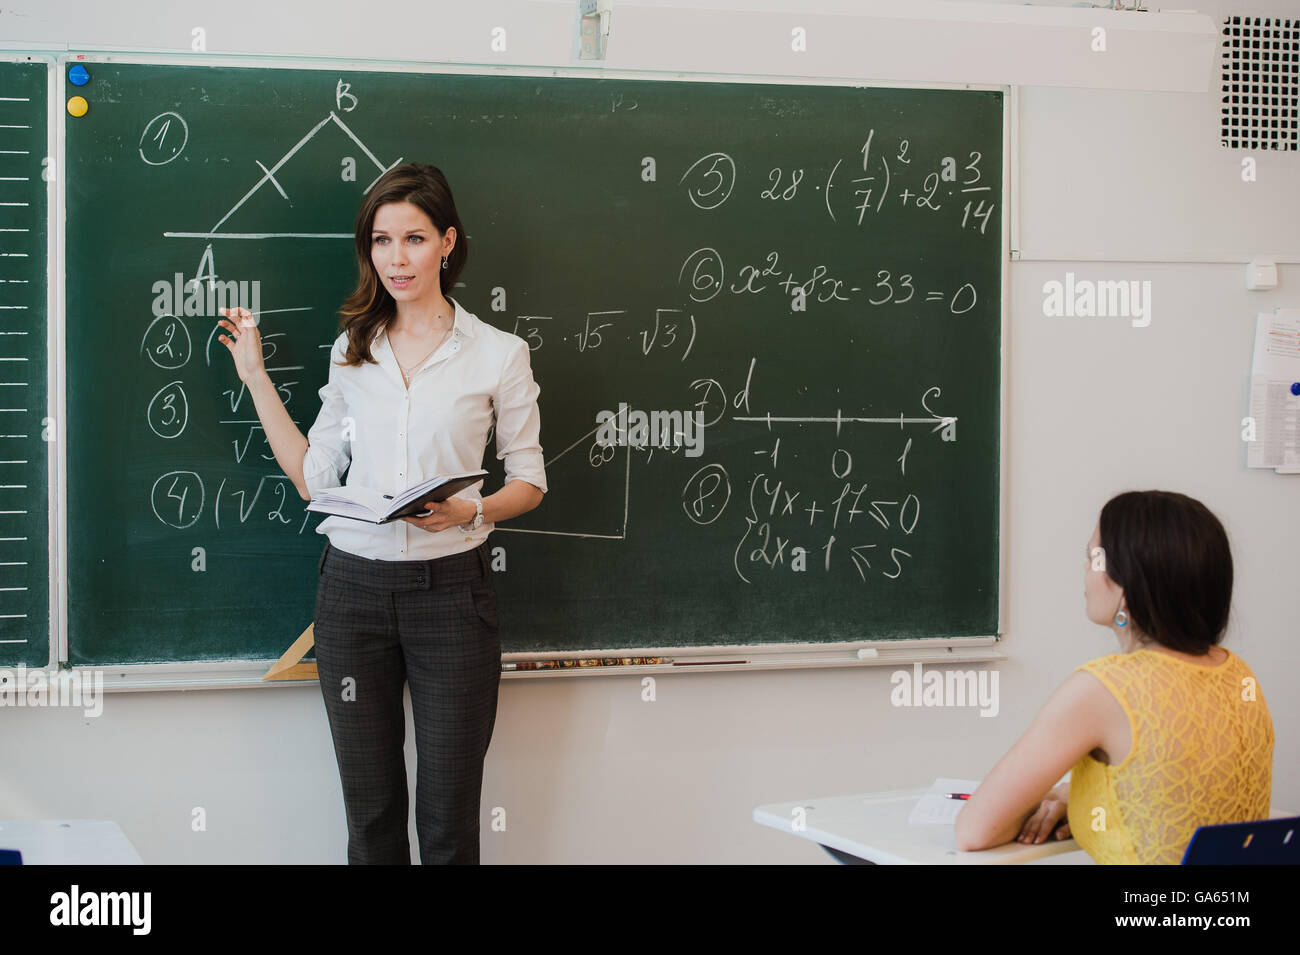 Teacher or docent or educator giving while lesson in front of a blackboard or board a sheet of paper and educate - Stock Image